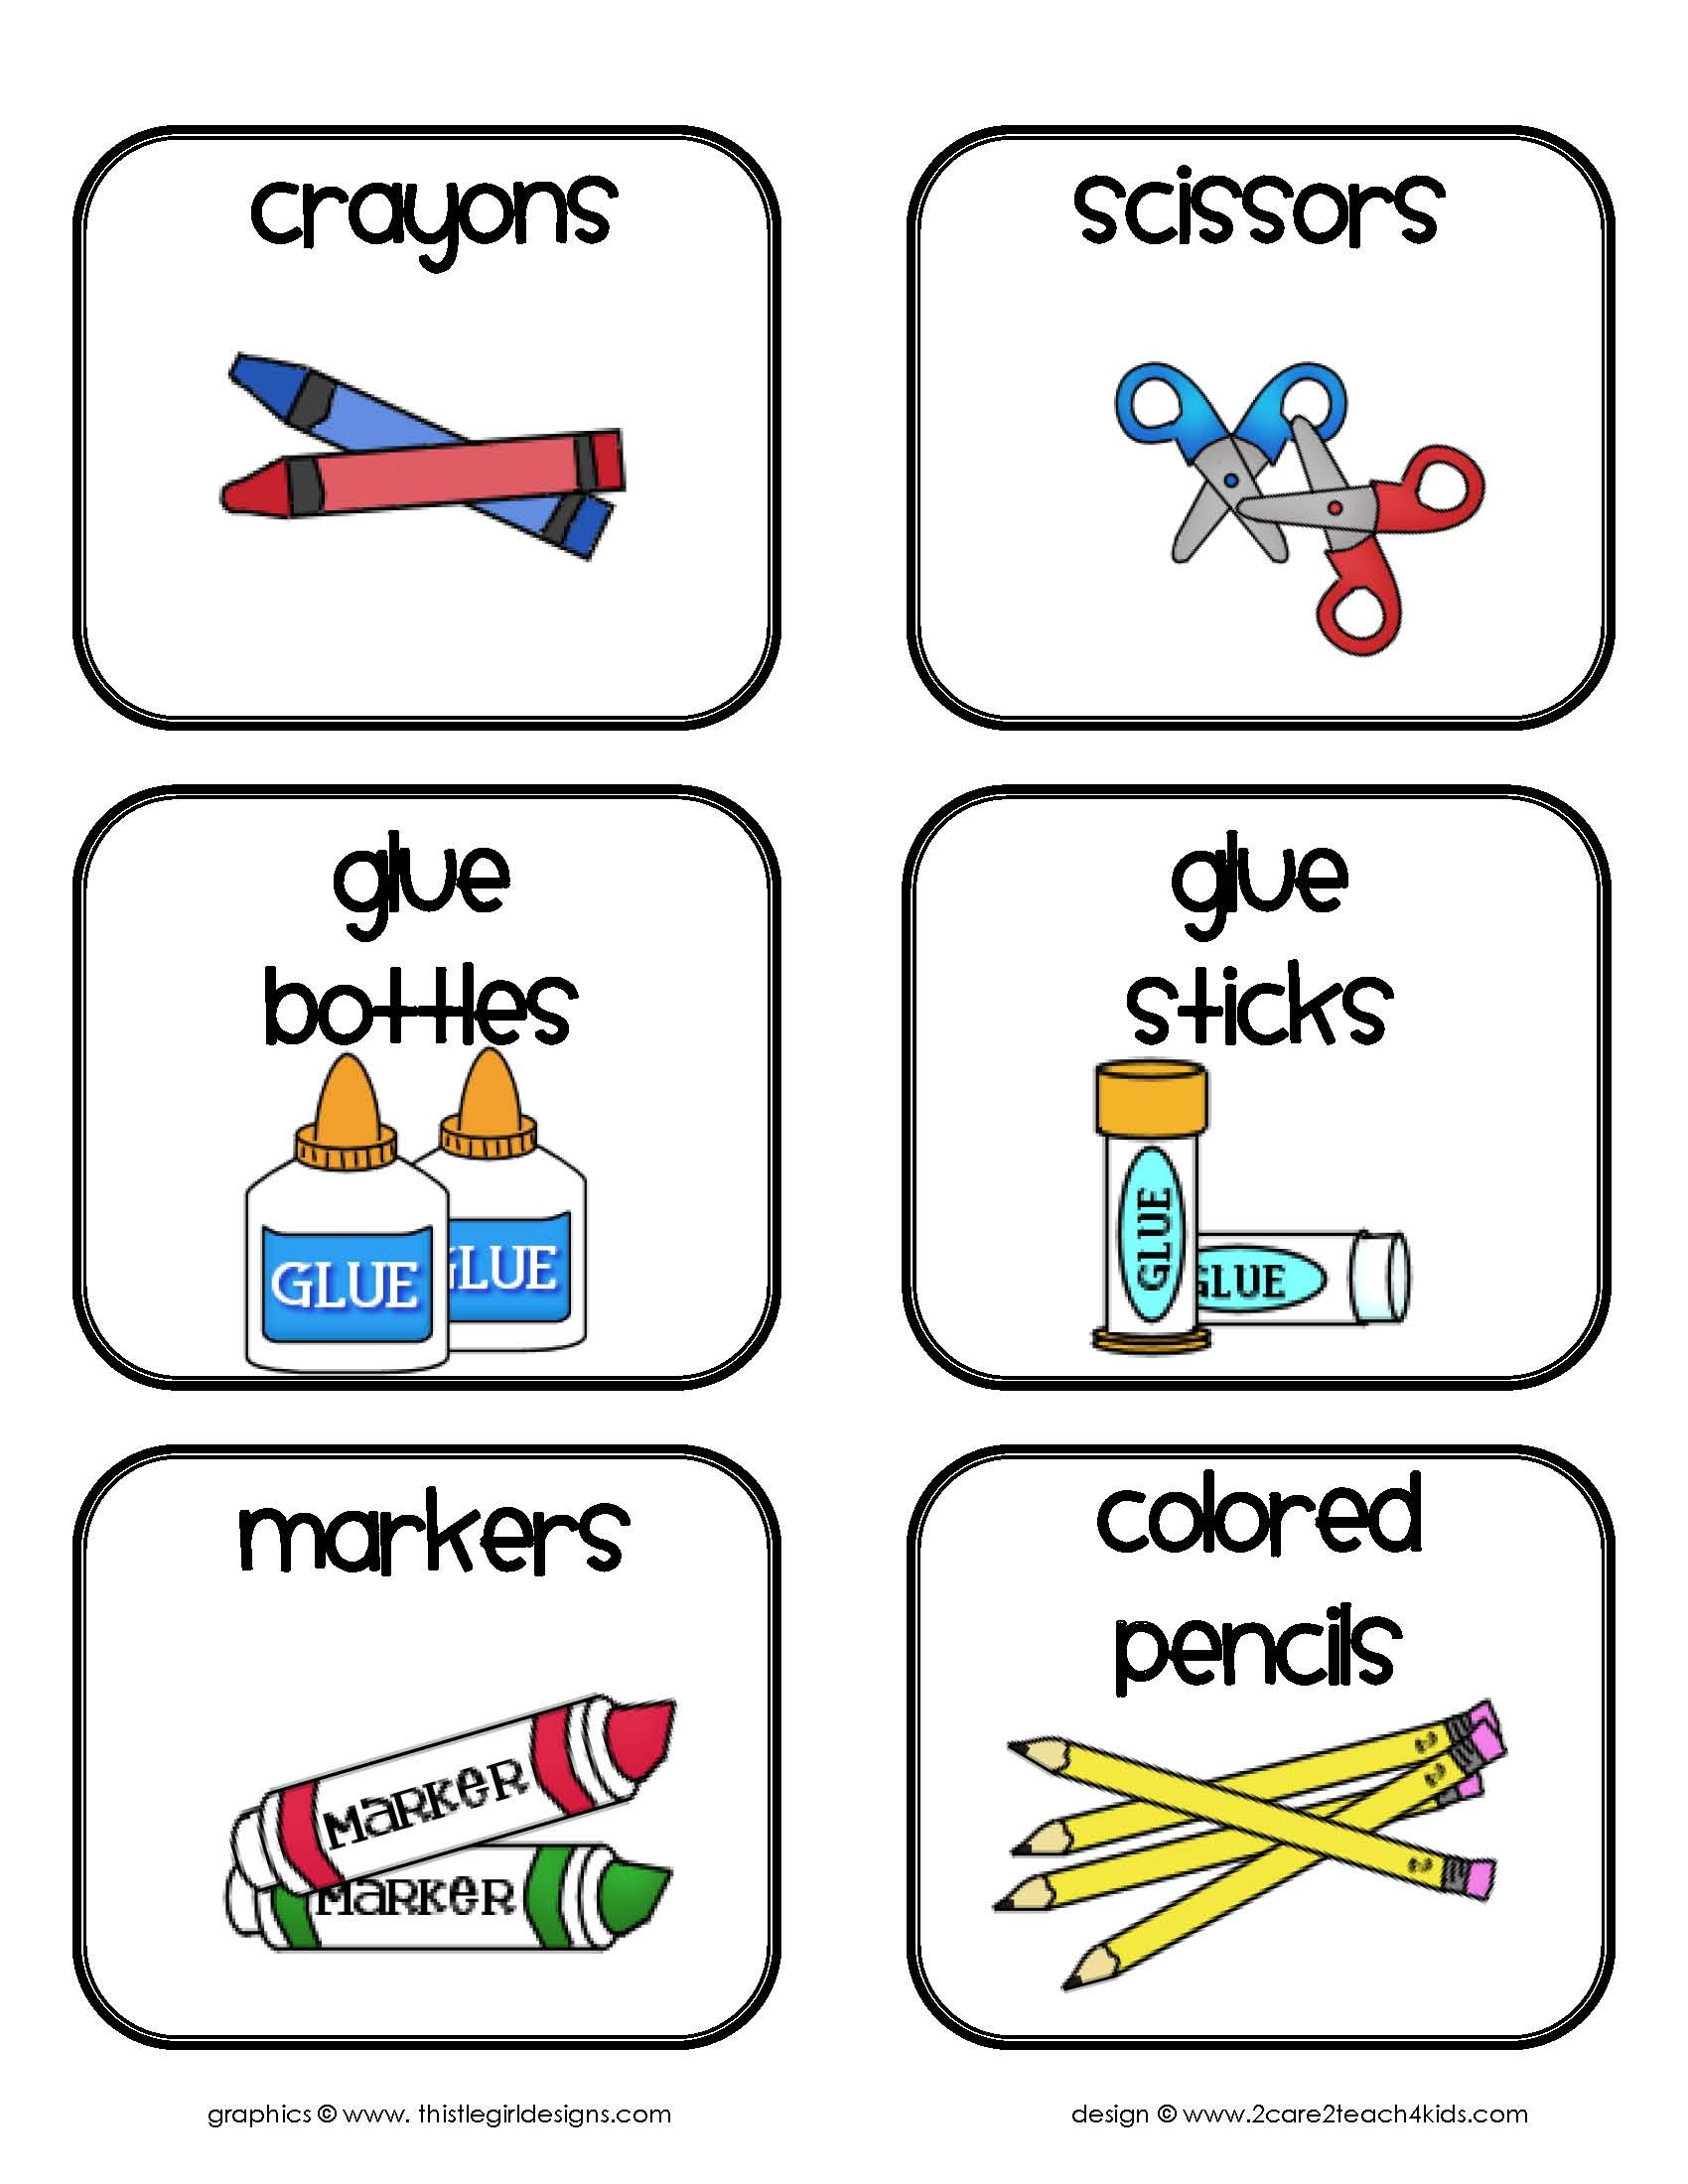 Free Printable Classroom Signs And Labels (85+ Images In Collection - Free Printable Classroom Signs And Labels